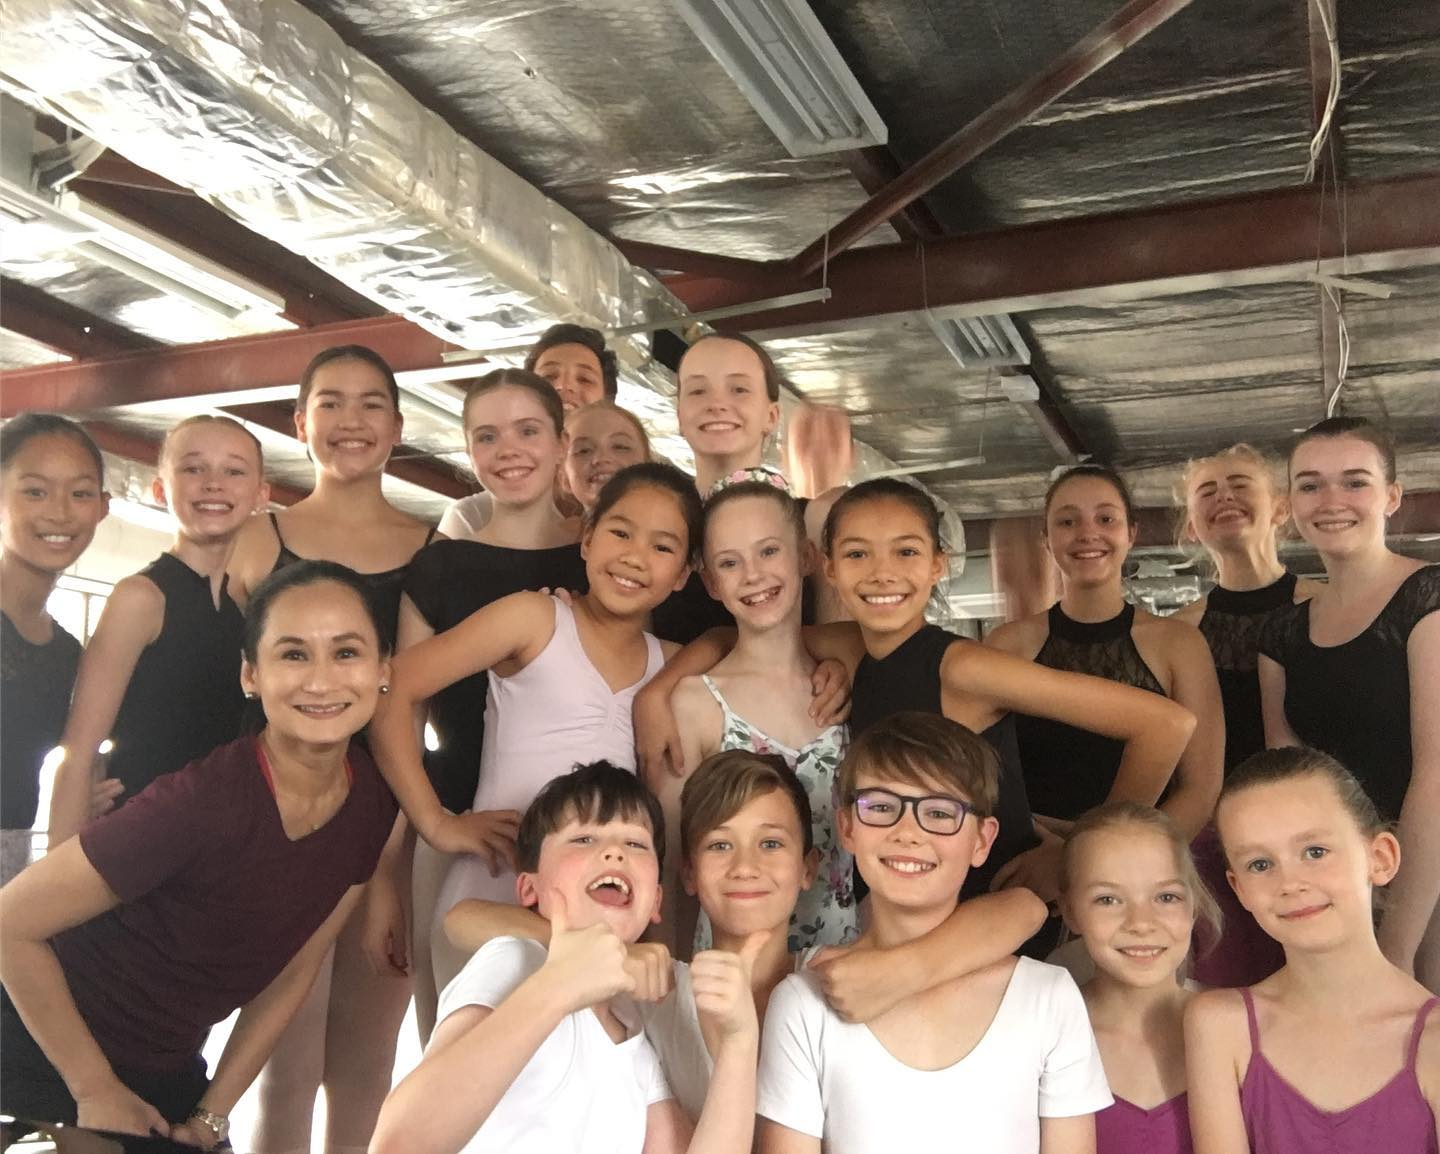 Ballet Manila artistic director Lisa Macuja-Elizalde (front, leftmost) poses for a group photo with some of her students during a summer workshop in Canberra, Australia.